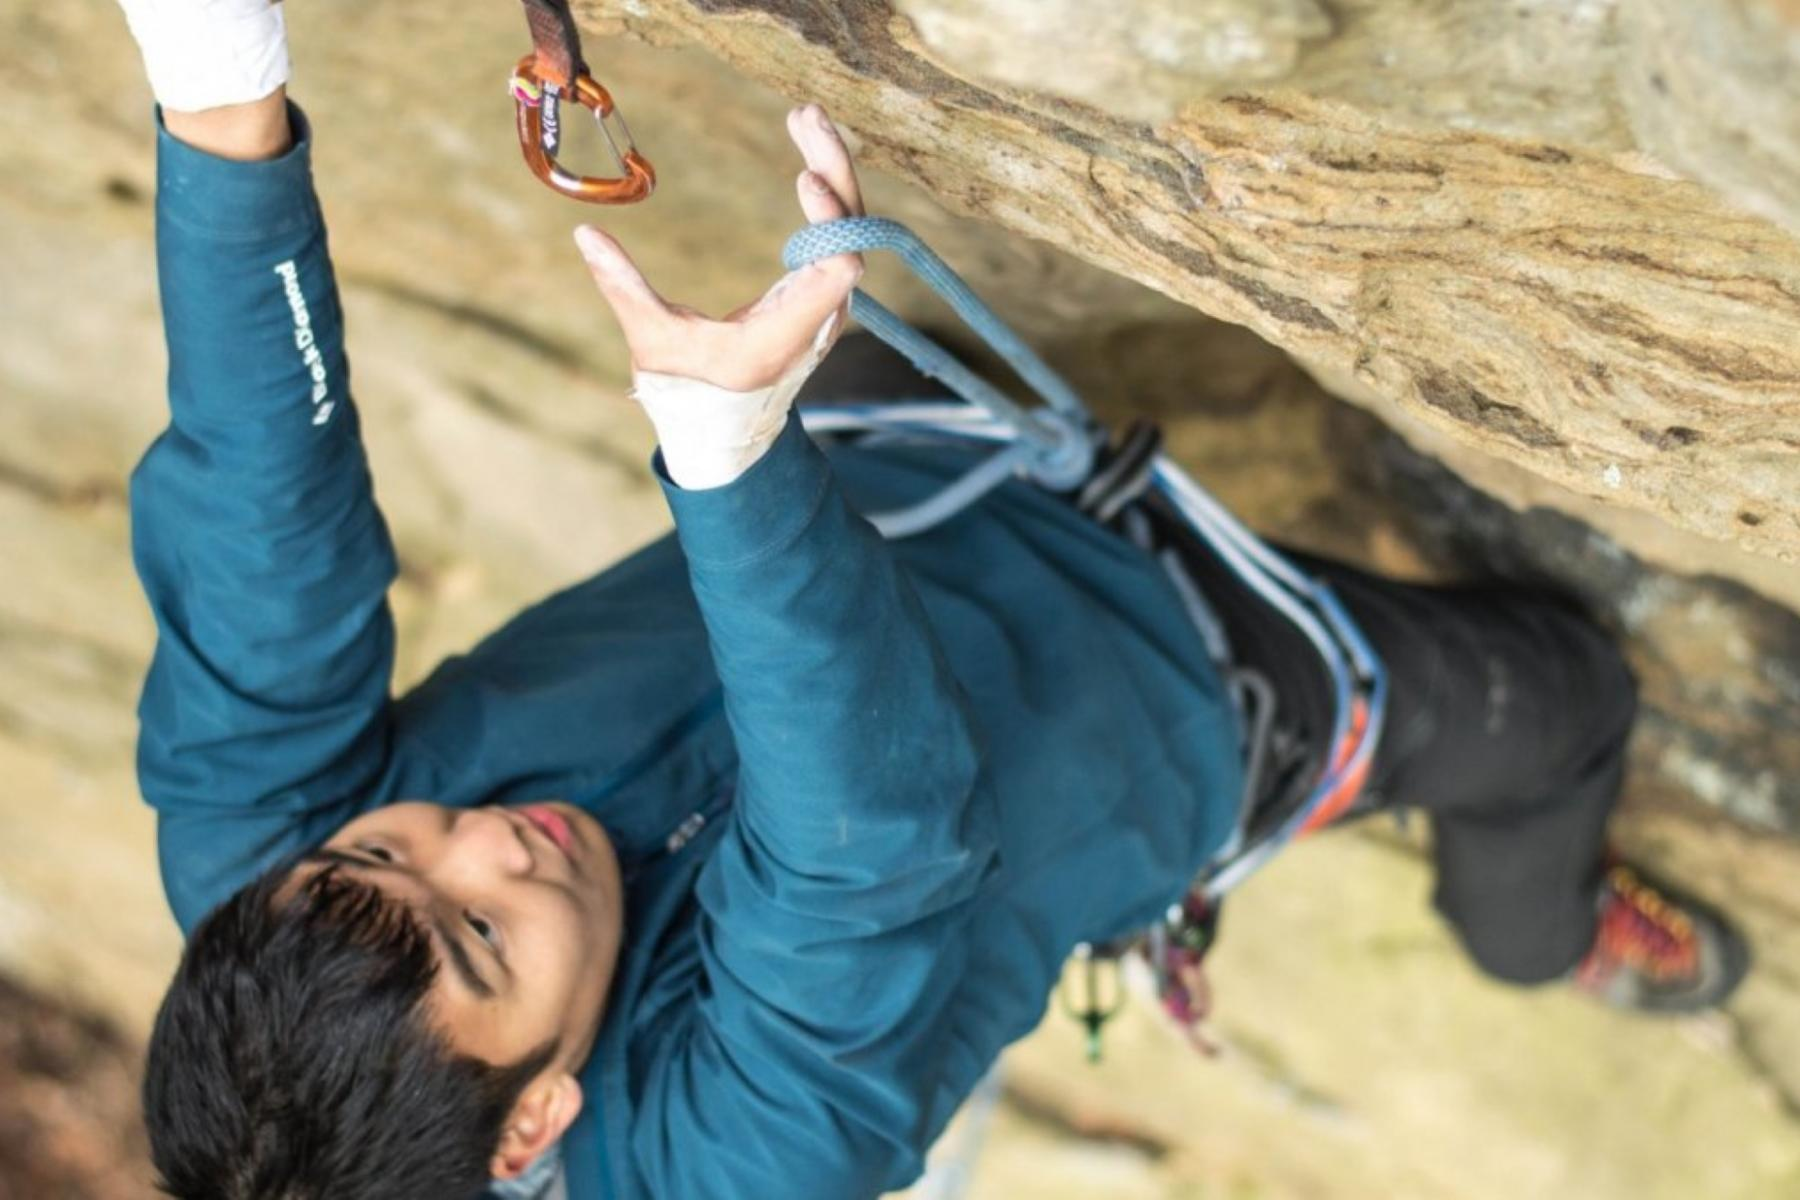 A Princeton student reaches to attach his rope at the Outdoor Action climbing gym